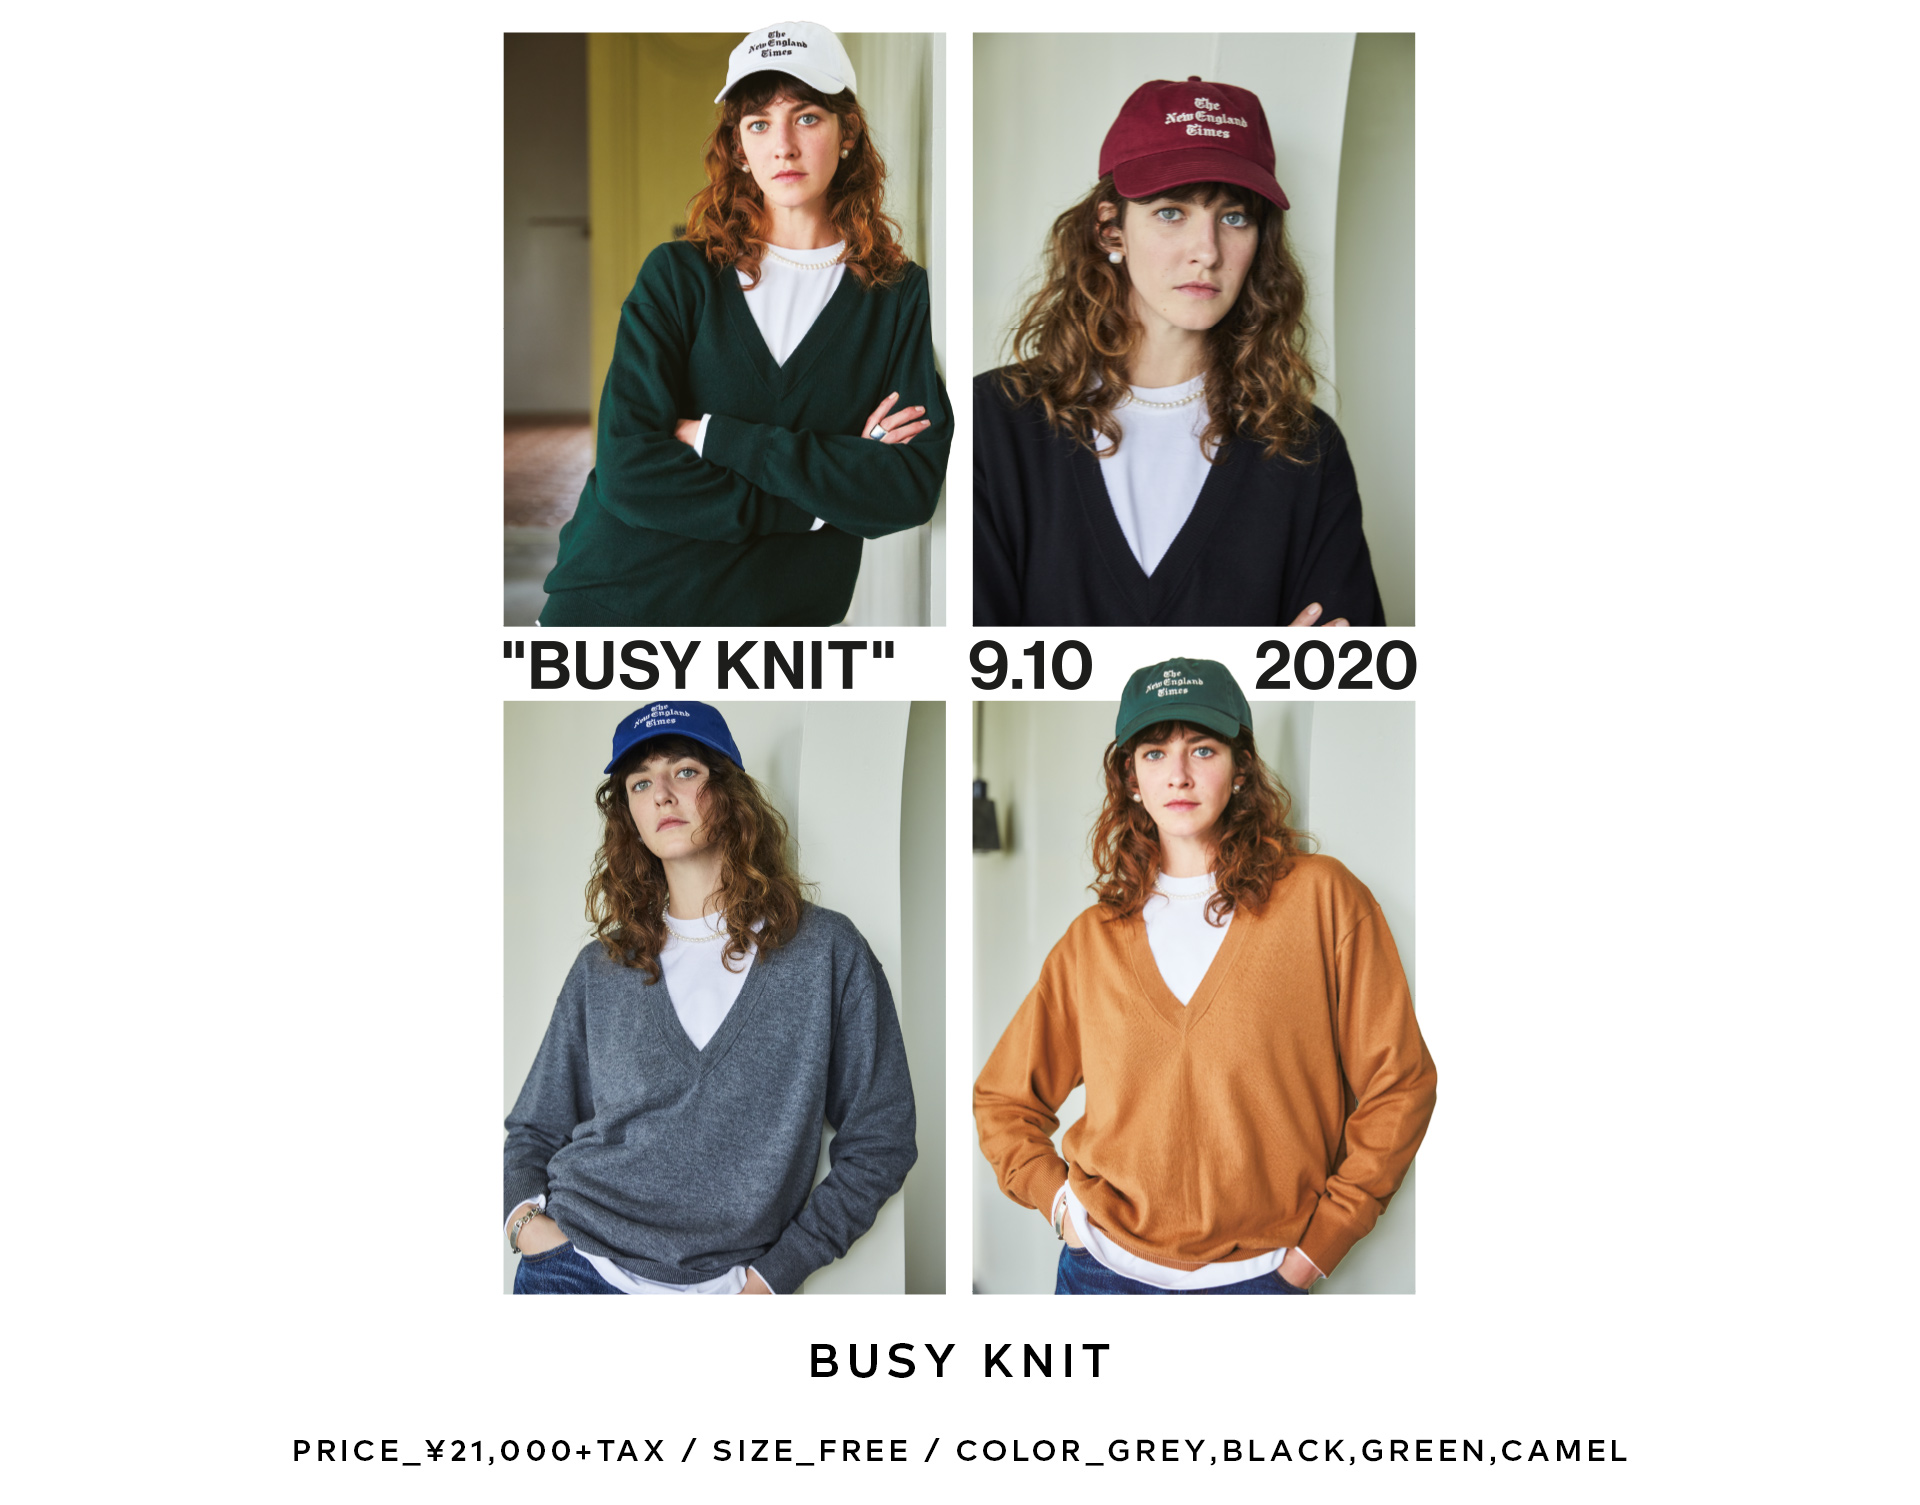 BUSY KNIT